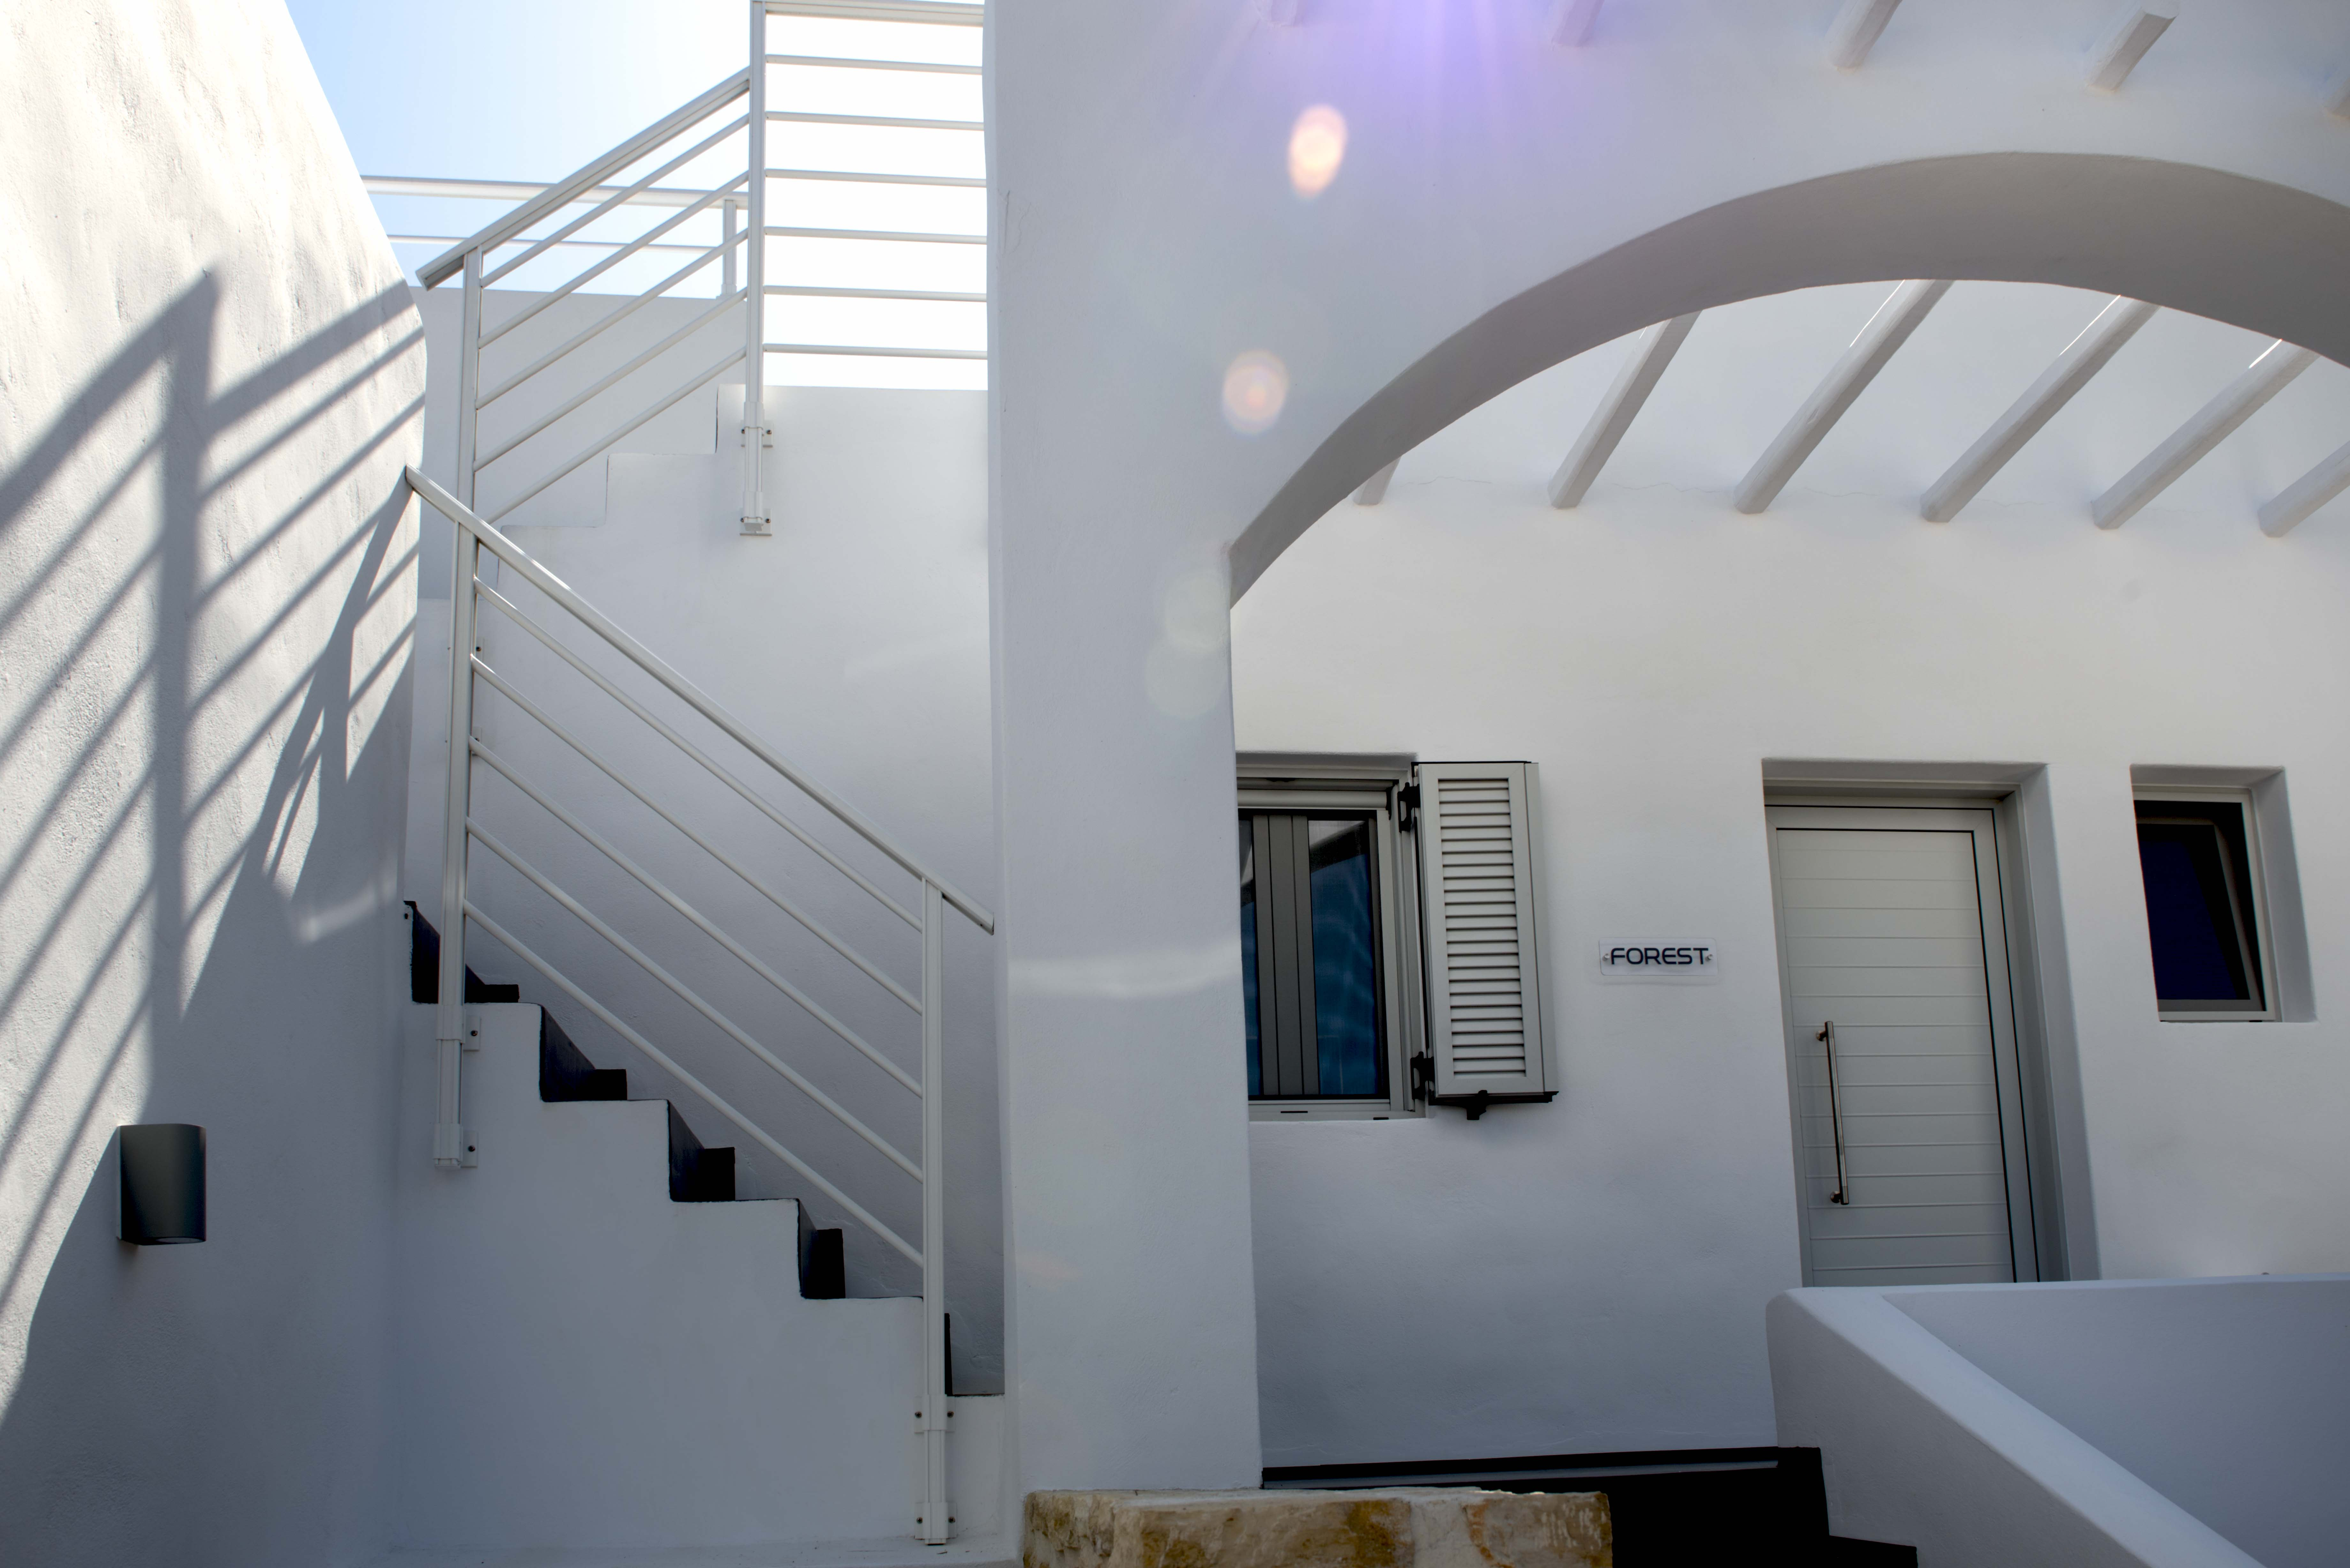 Galini Breeze Studio Entrance And Stairs To Private Roof Deck